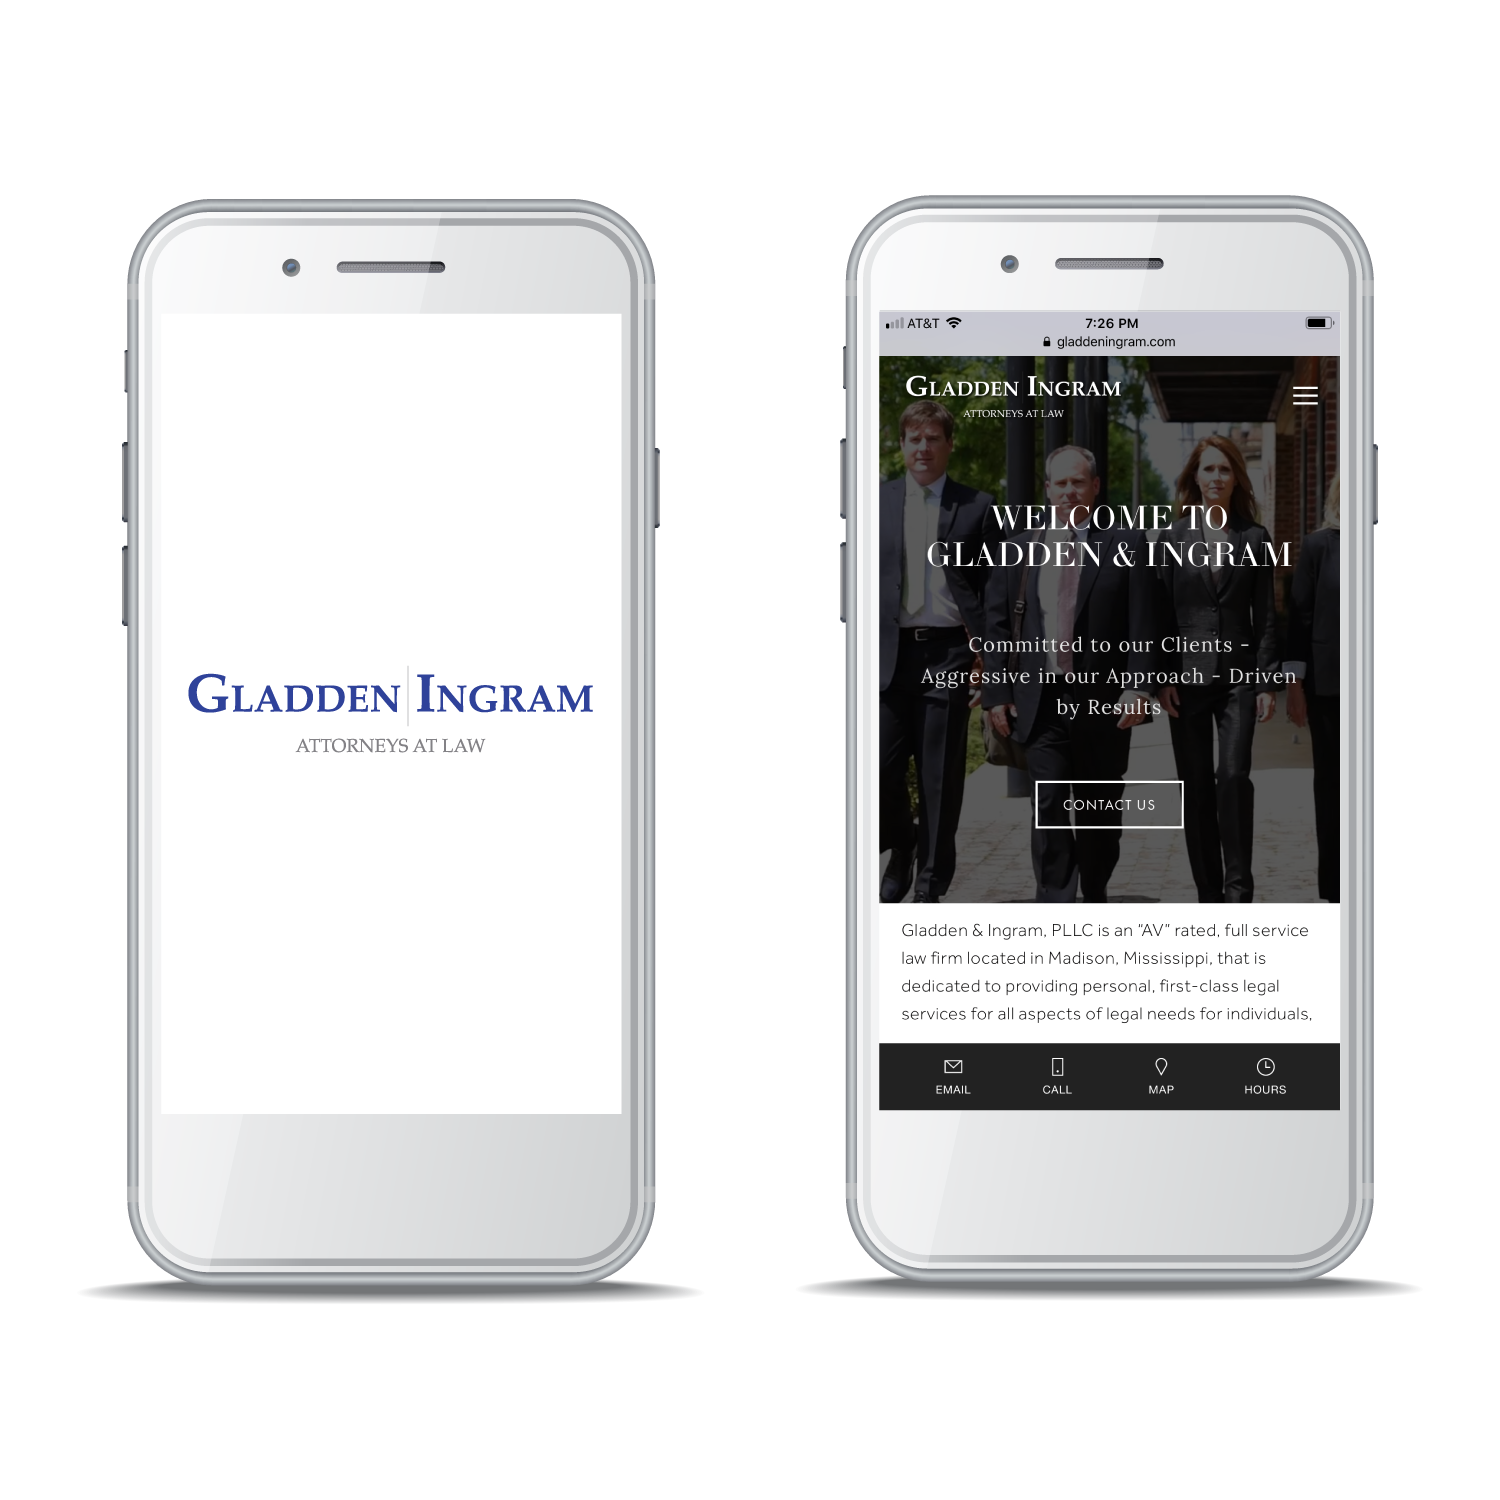 Gladden & Ingram, PLLC - Mobile Website Design and Development, Corporate Photography, Video Production, Content Management Training.